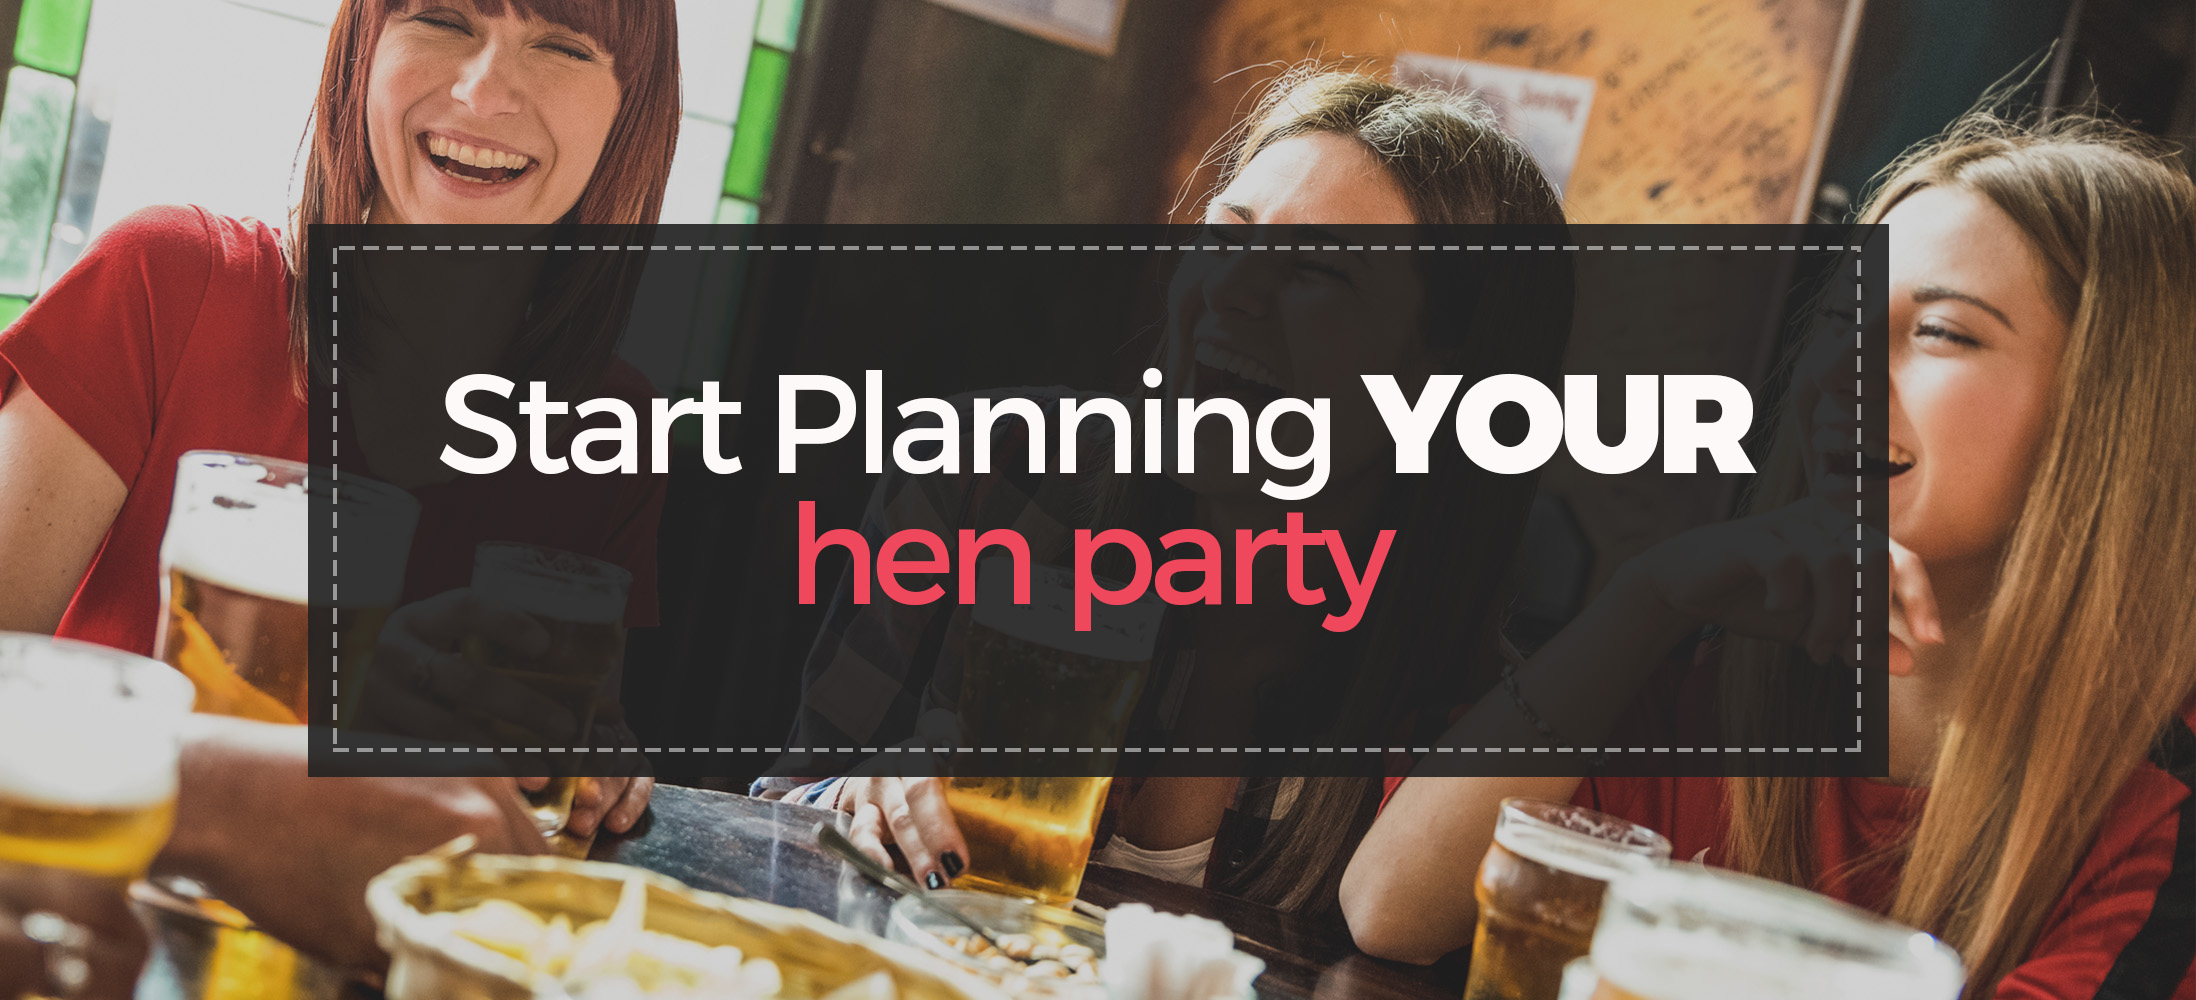 Start Planning Your Hen Party